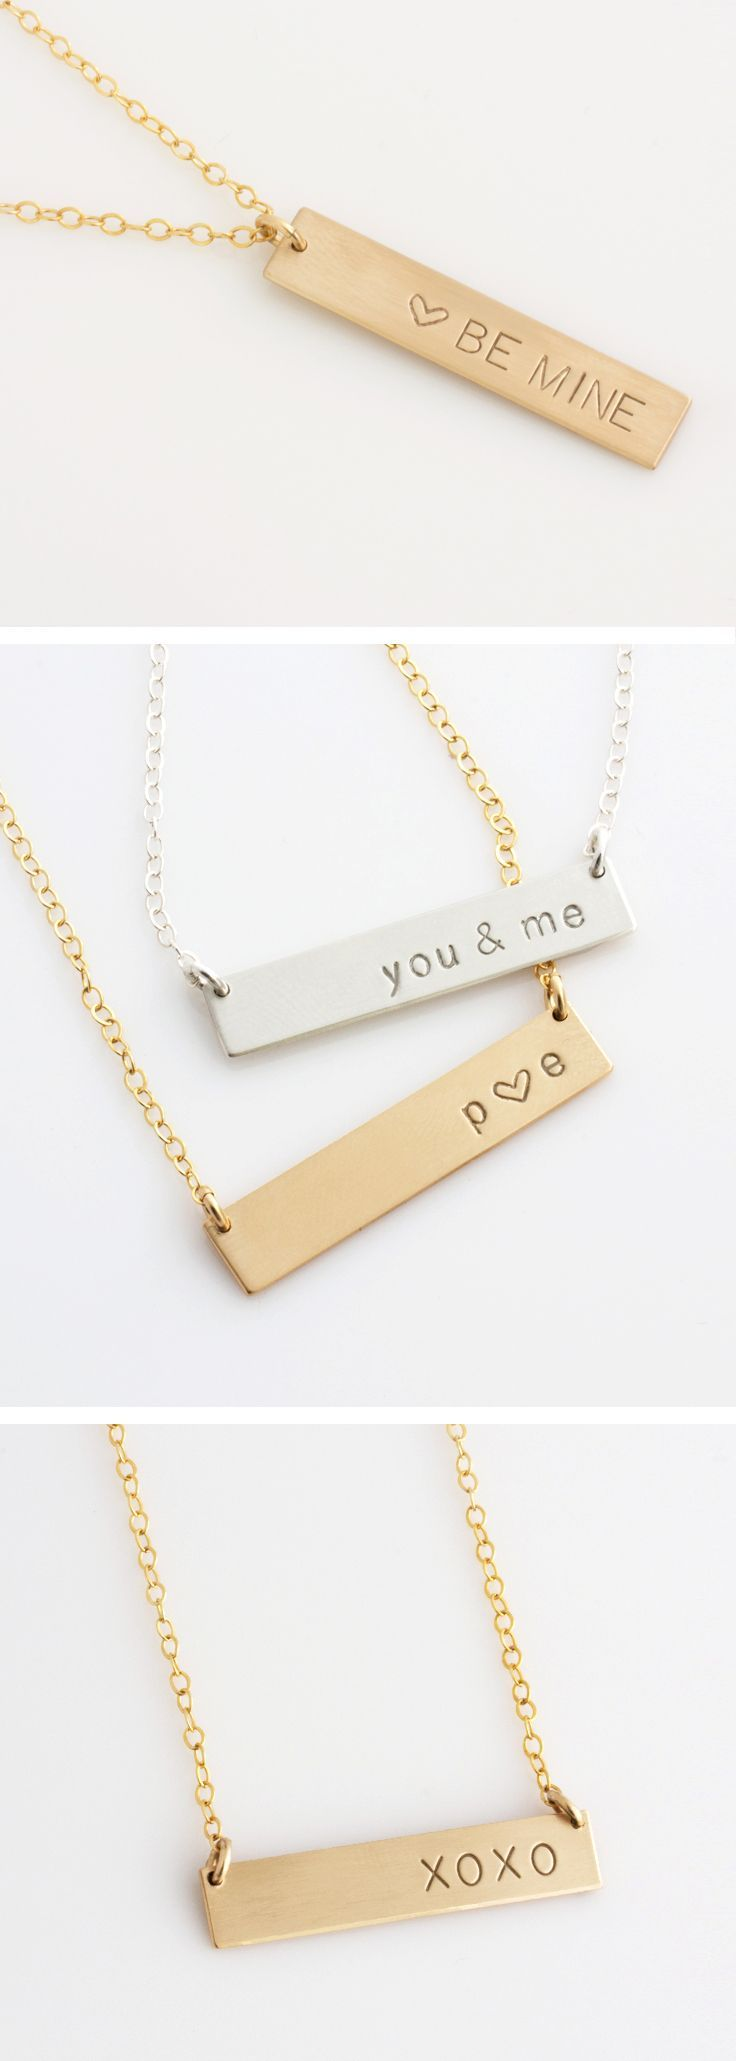 Personalized Bar Necklace, Personalized Nameplate Necklace, Gold Bar Necklace for Her, Gift for Her, Gold Bar, Silver Bar,LEILA Bar Necklace